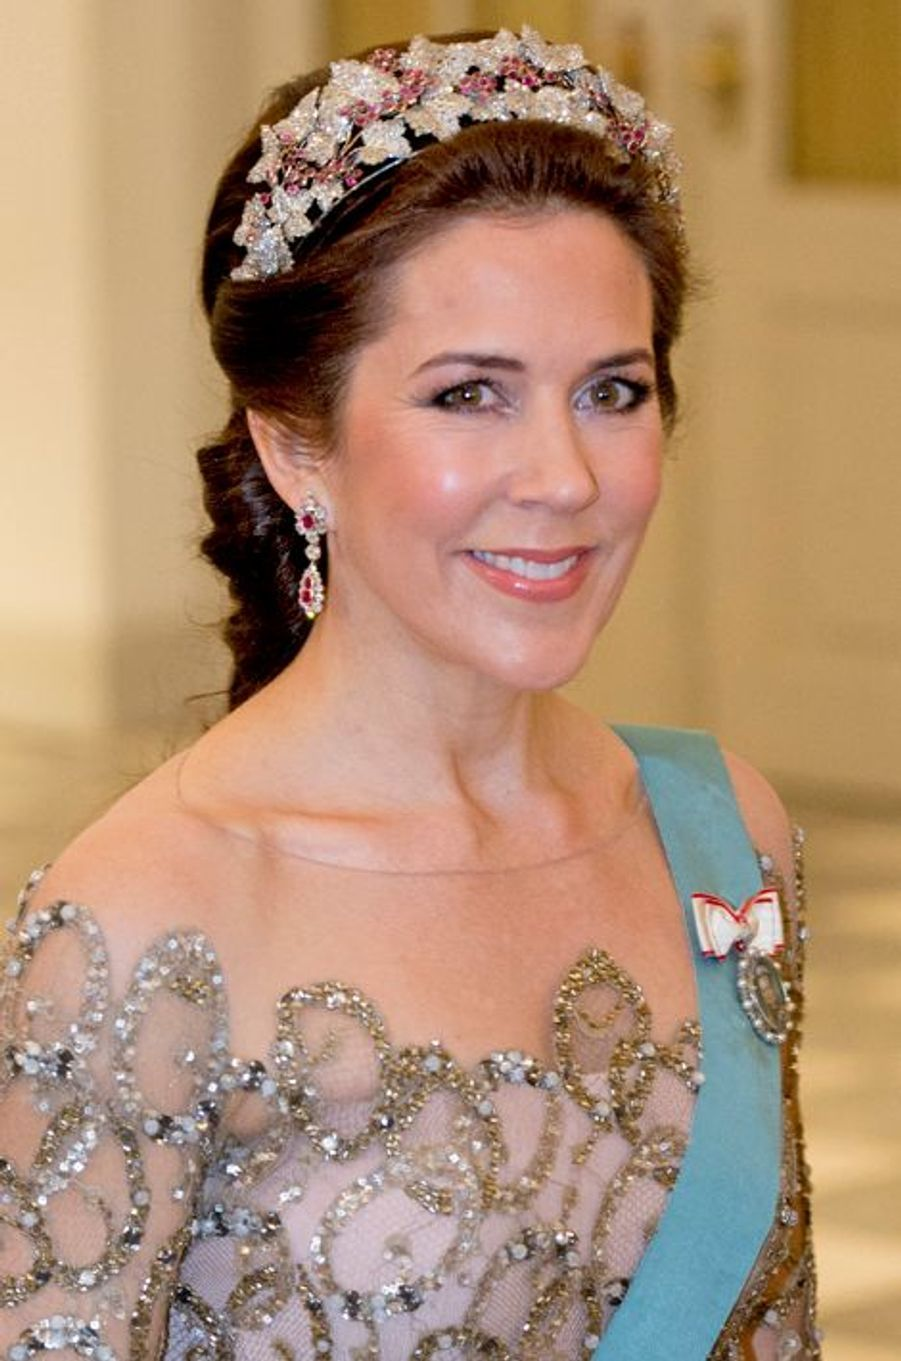 La princesse Mary de Danemark à Copenhague, le 15 avril 2015